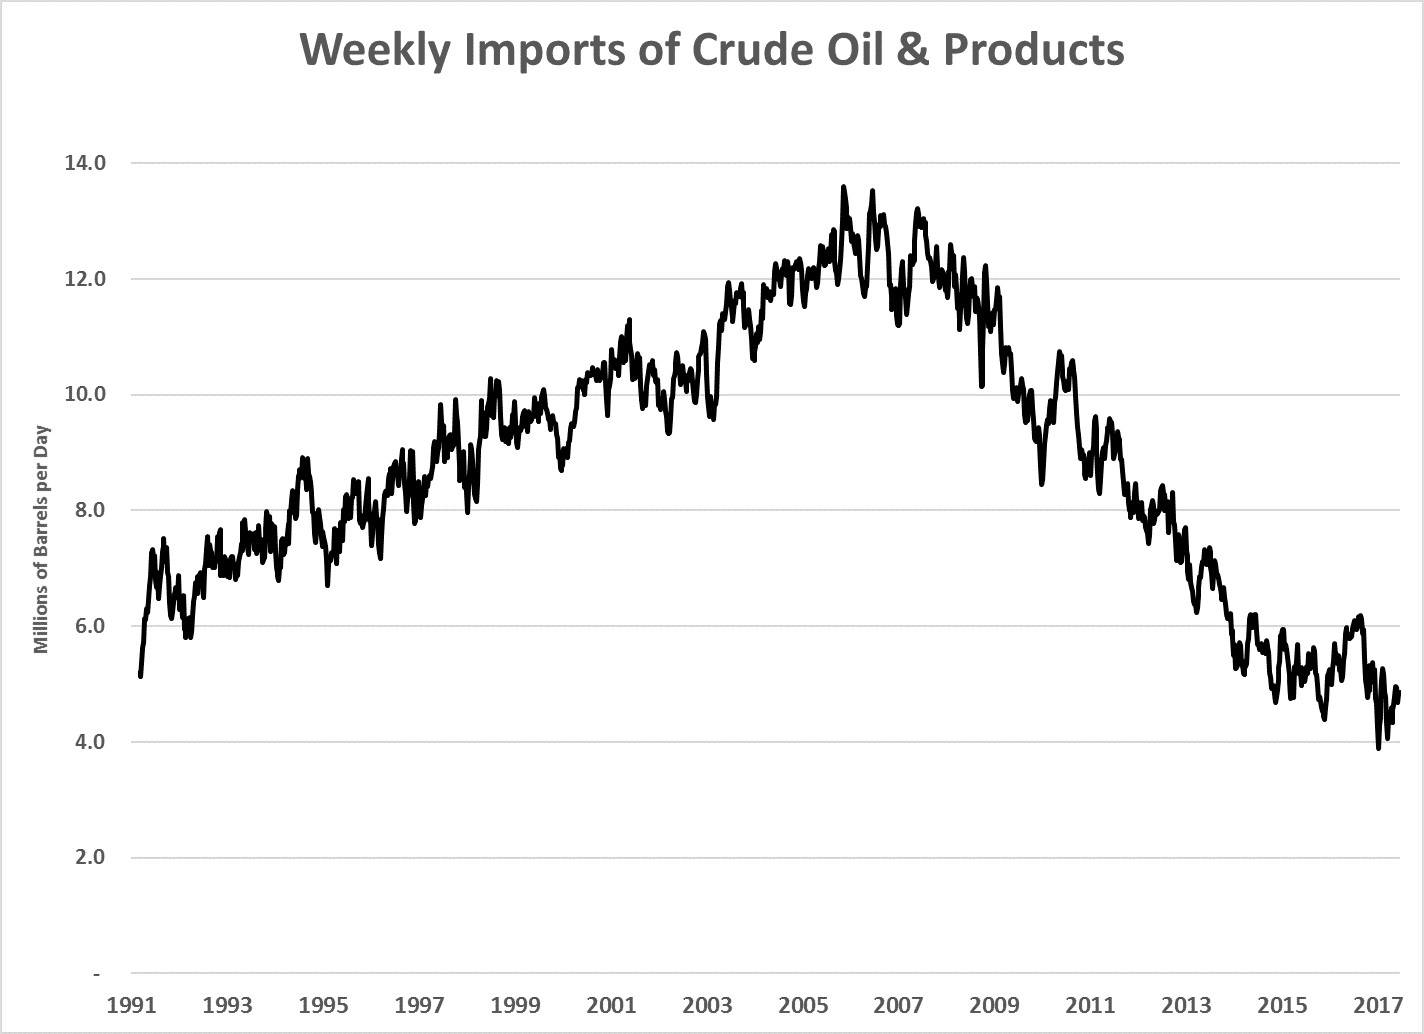 U.S. net petroleum imports fell under 4 million barrels per day in April and again in May. That's the lowest point since we began keeping records in 1991.